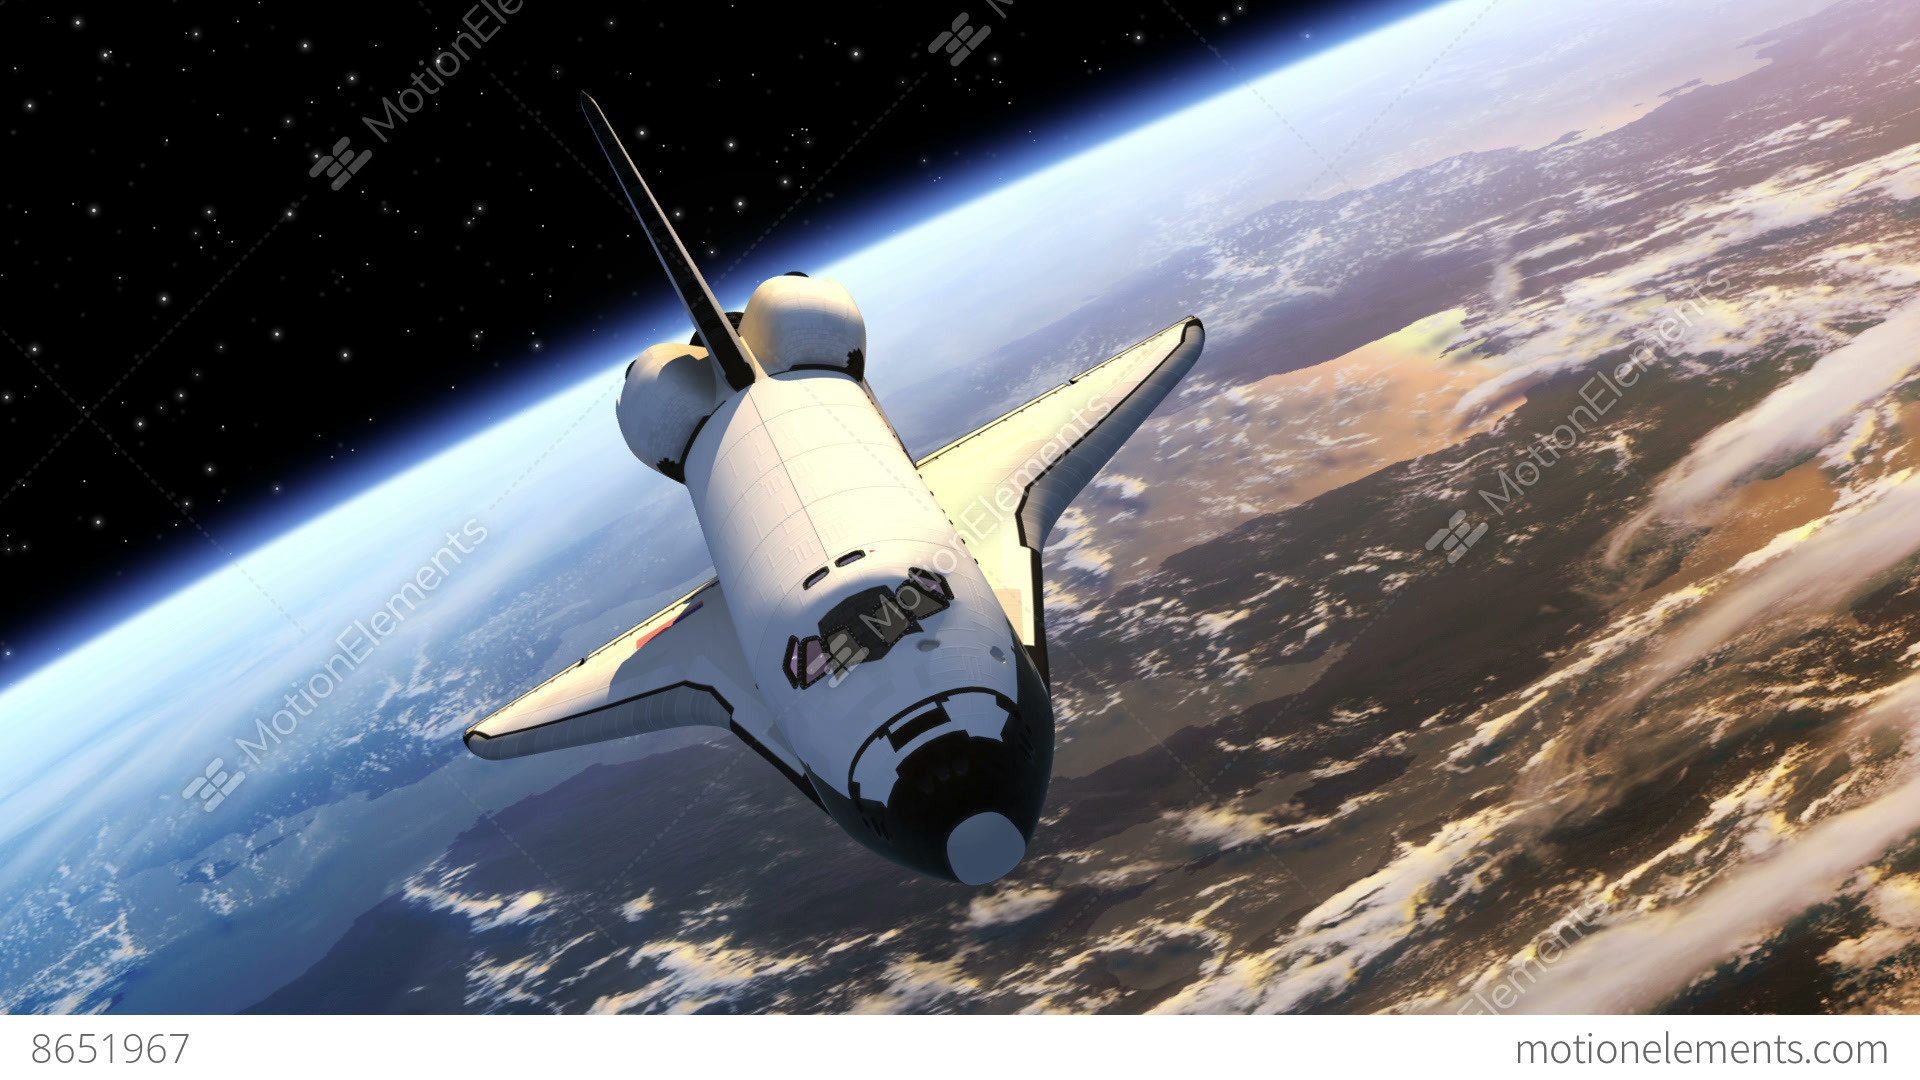 space shuttle challenger payload - photo #10